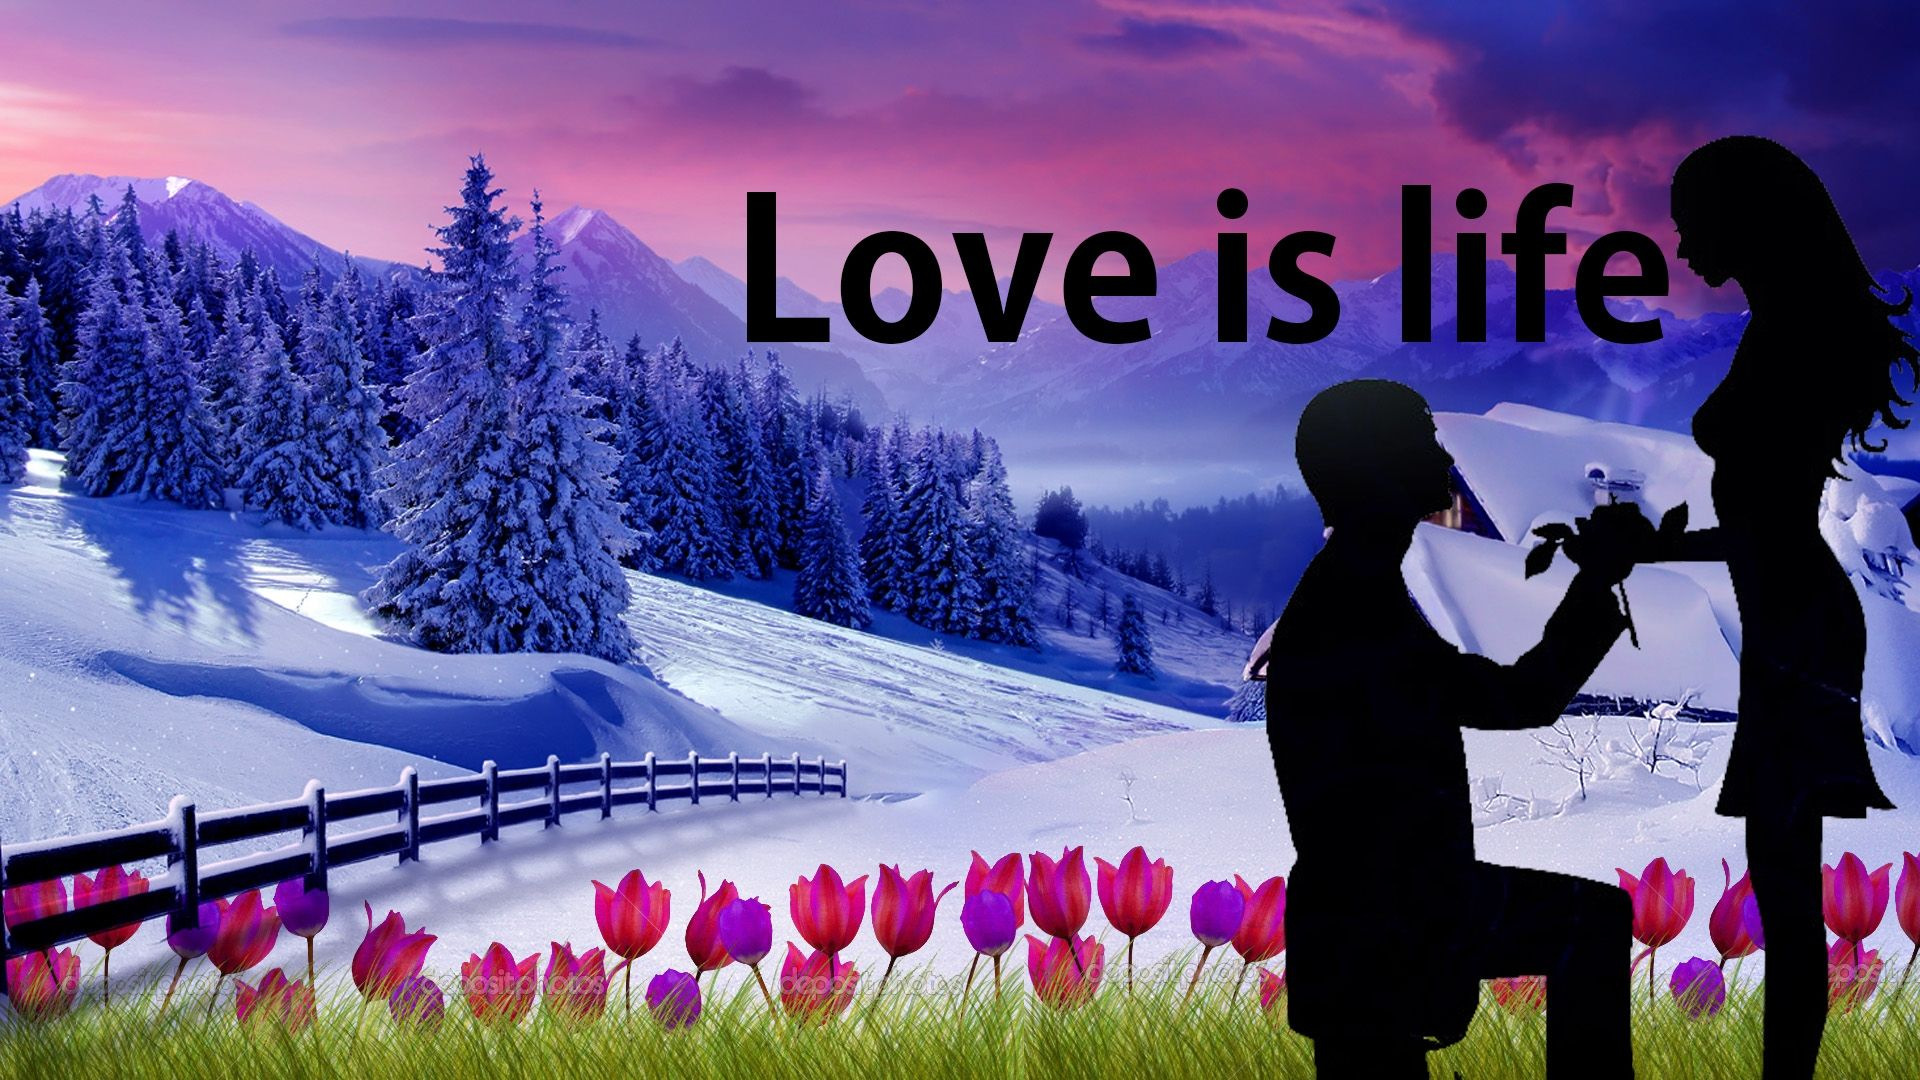 download wallpaper of love is life hd - download wallpaper of love